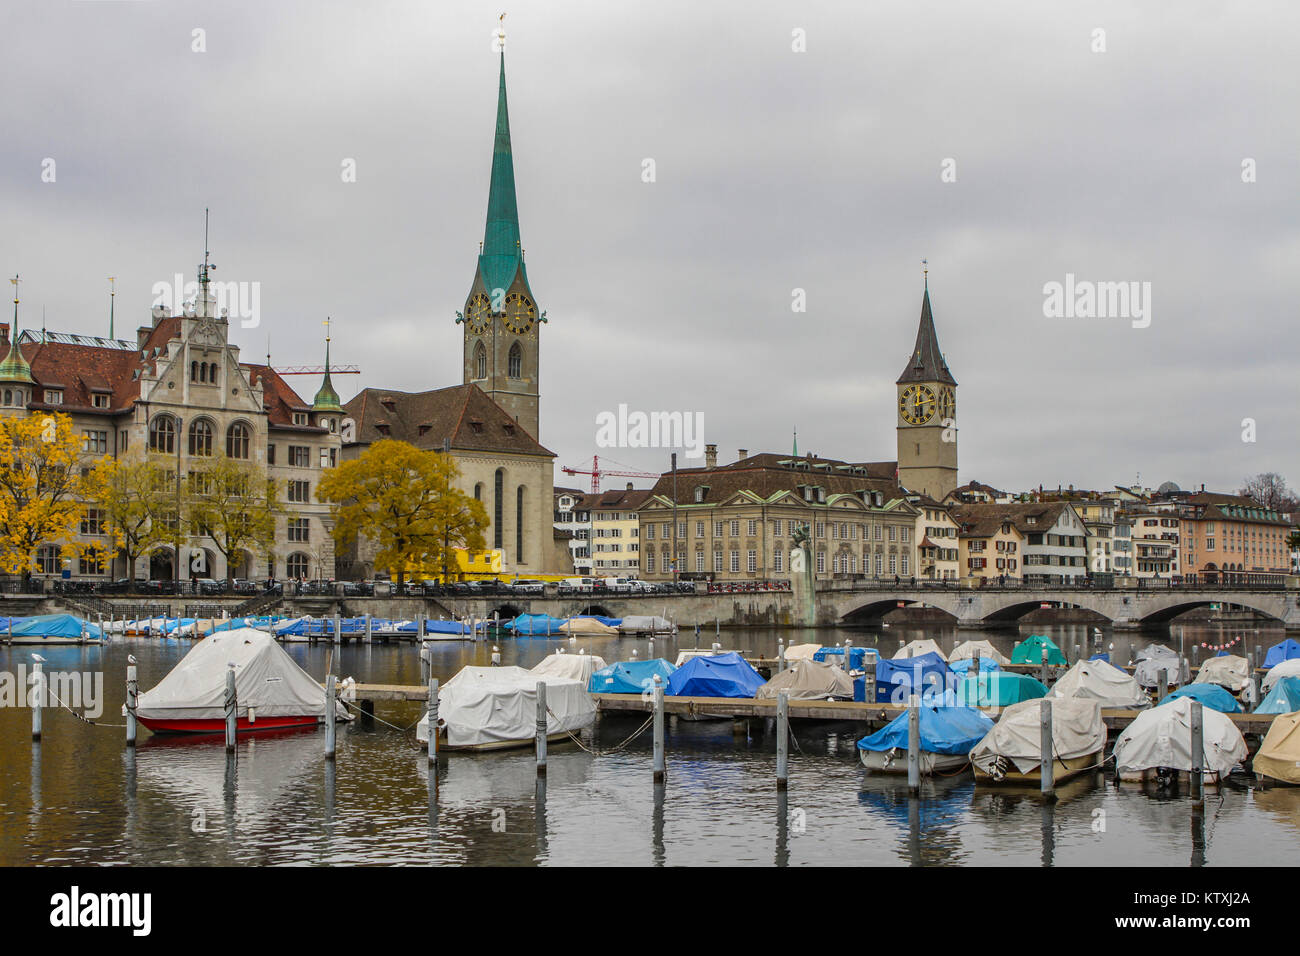 Stadthaus, Fraumünster Church and church St. Peter at Limmat river, old town of Zurich or Zürich, Switzerland - Stock Image